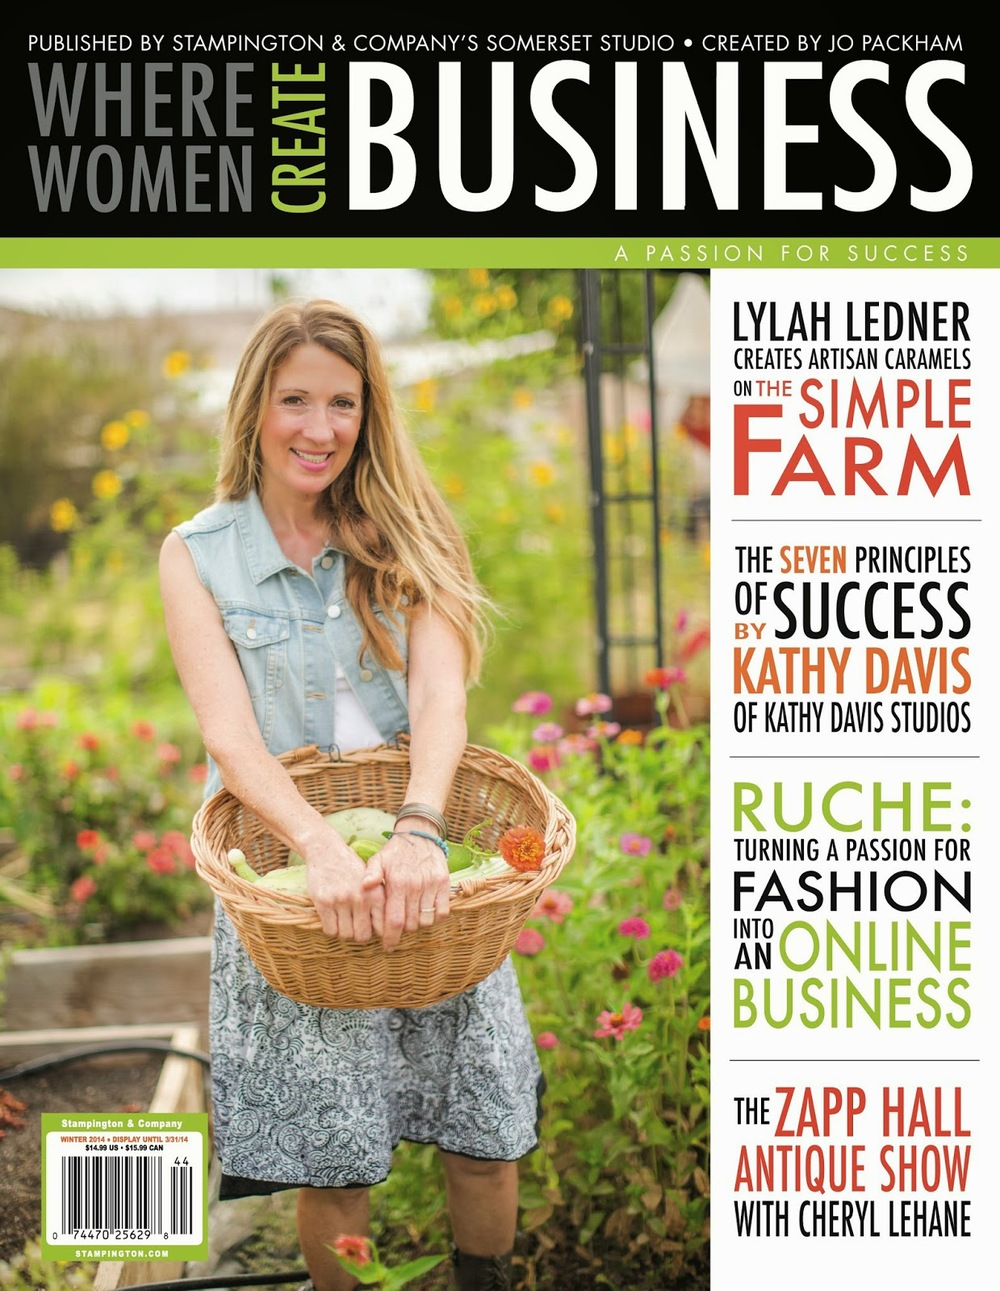 wwcbusiness-cover.jpg